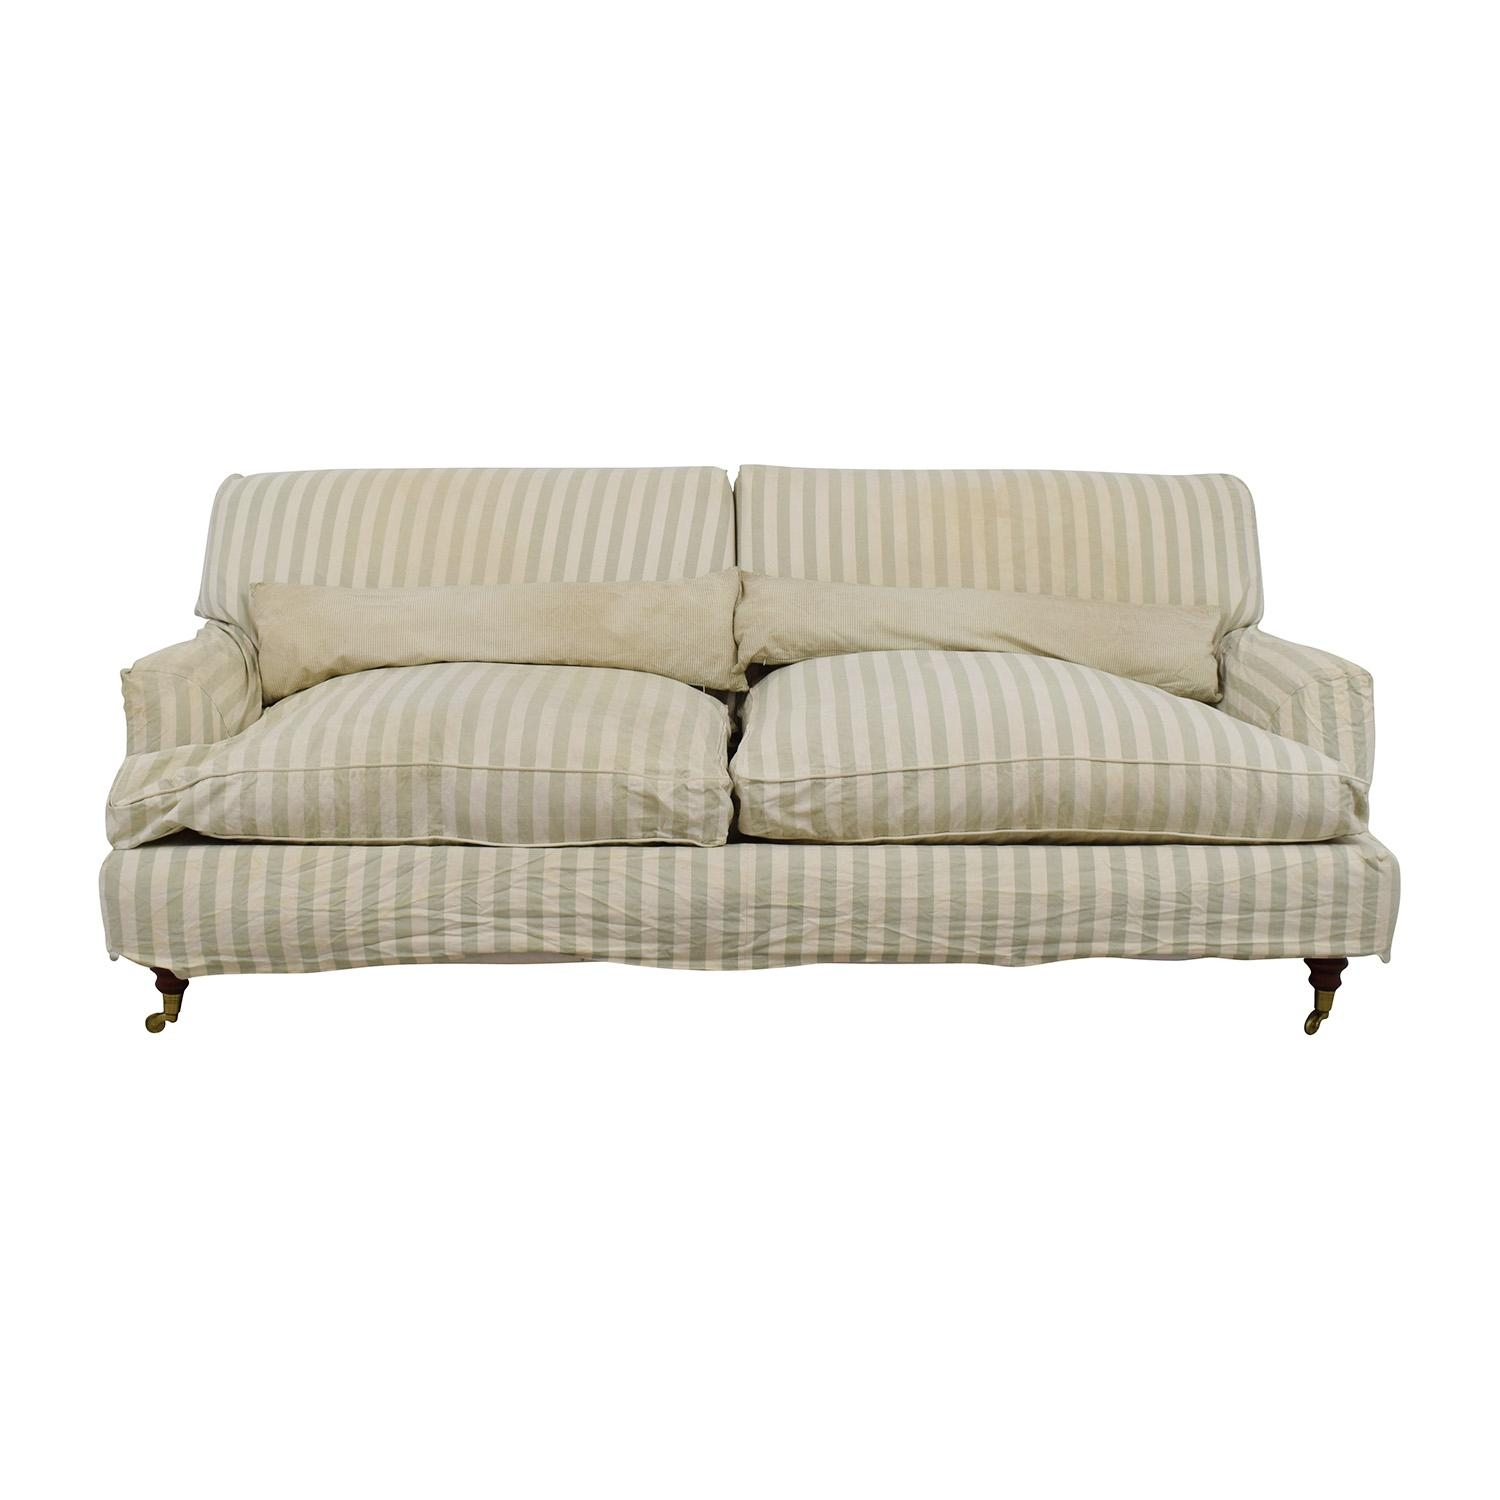 85% Off – Green And White Striped English Roll Arm Sofa / Sofas Within Classic English Sofas (View 3 of 21)